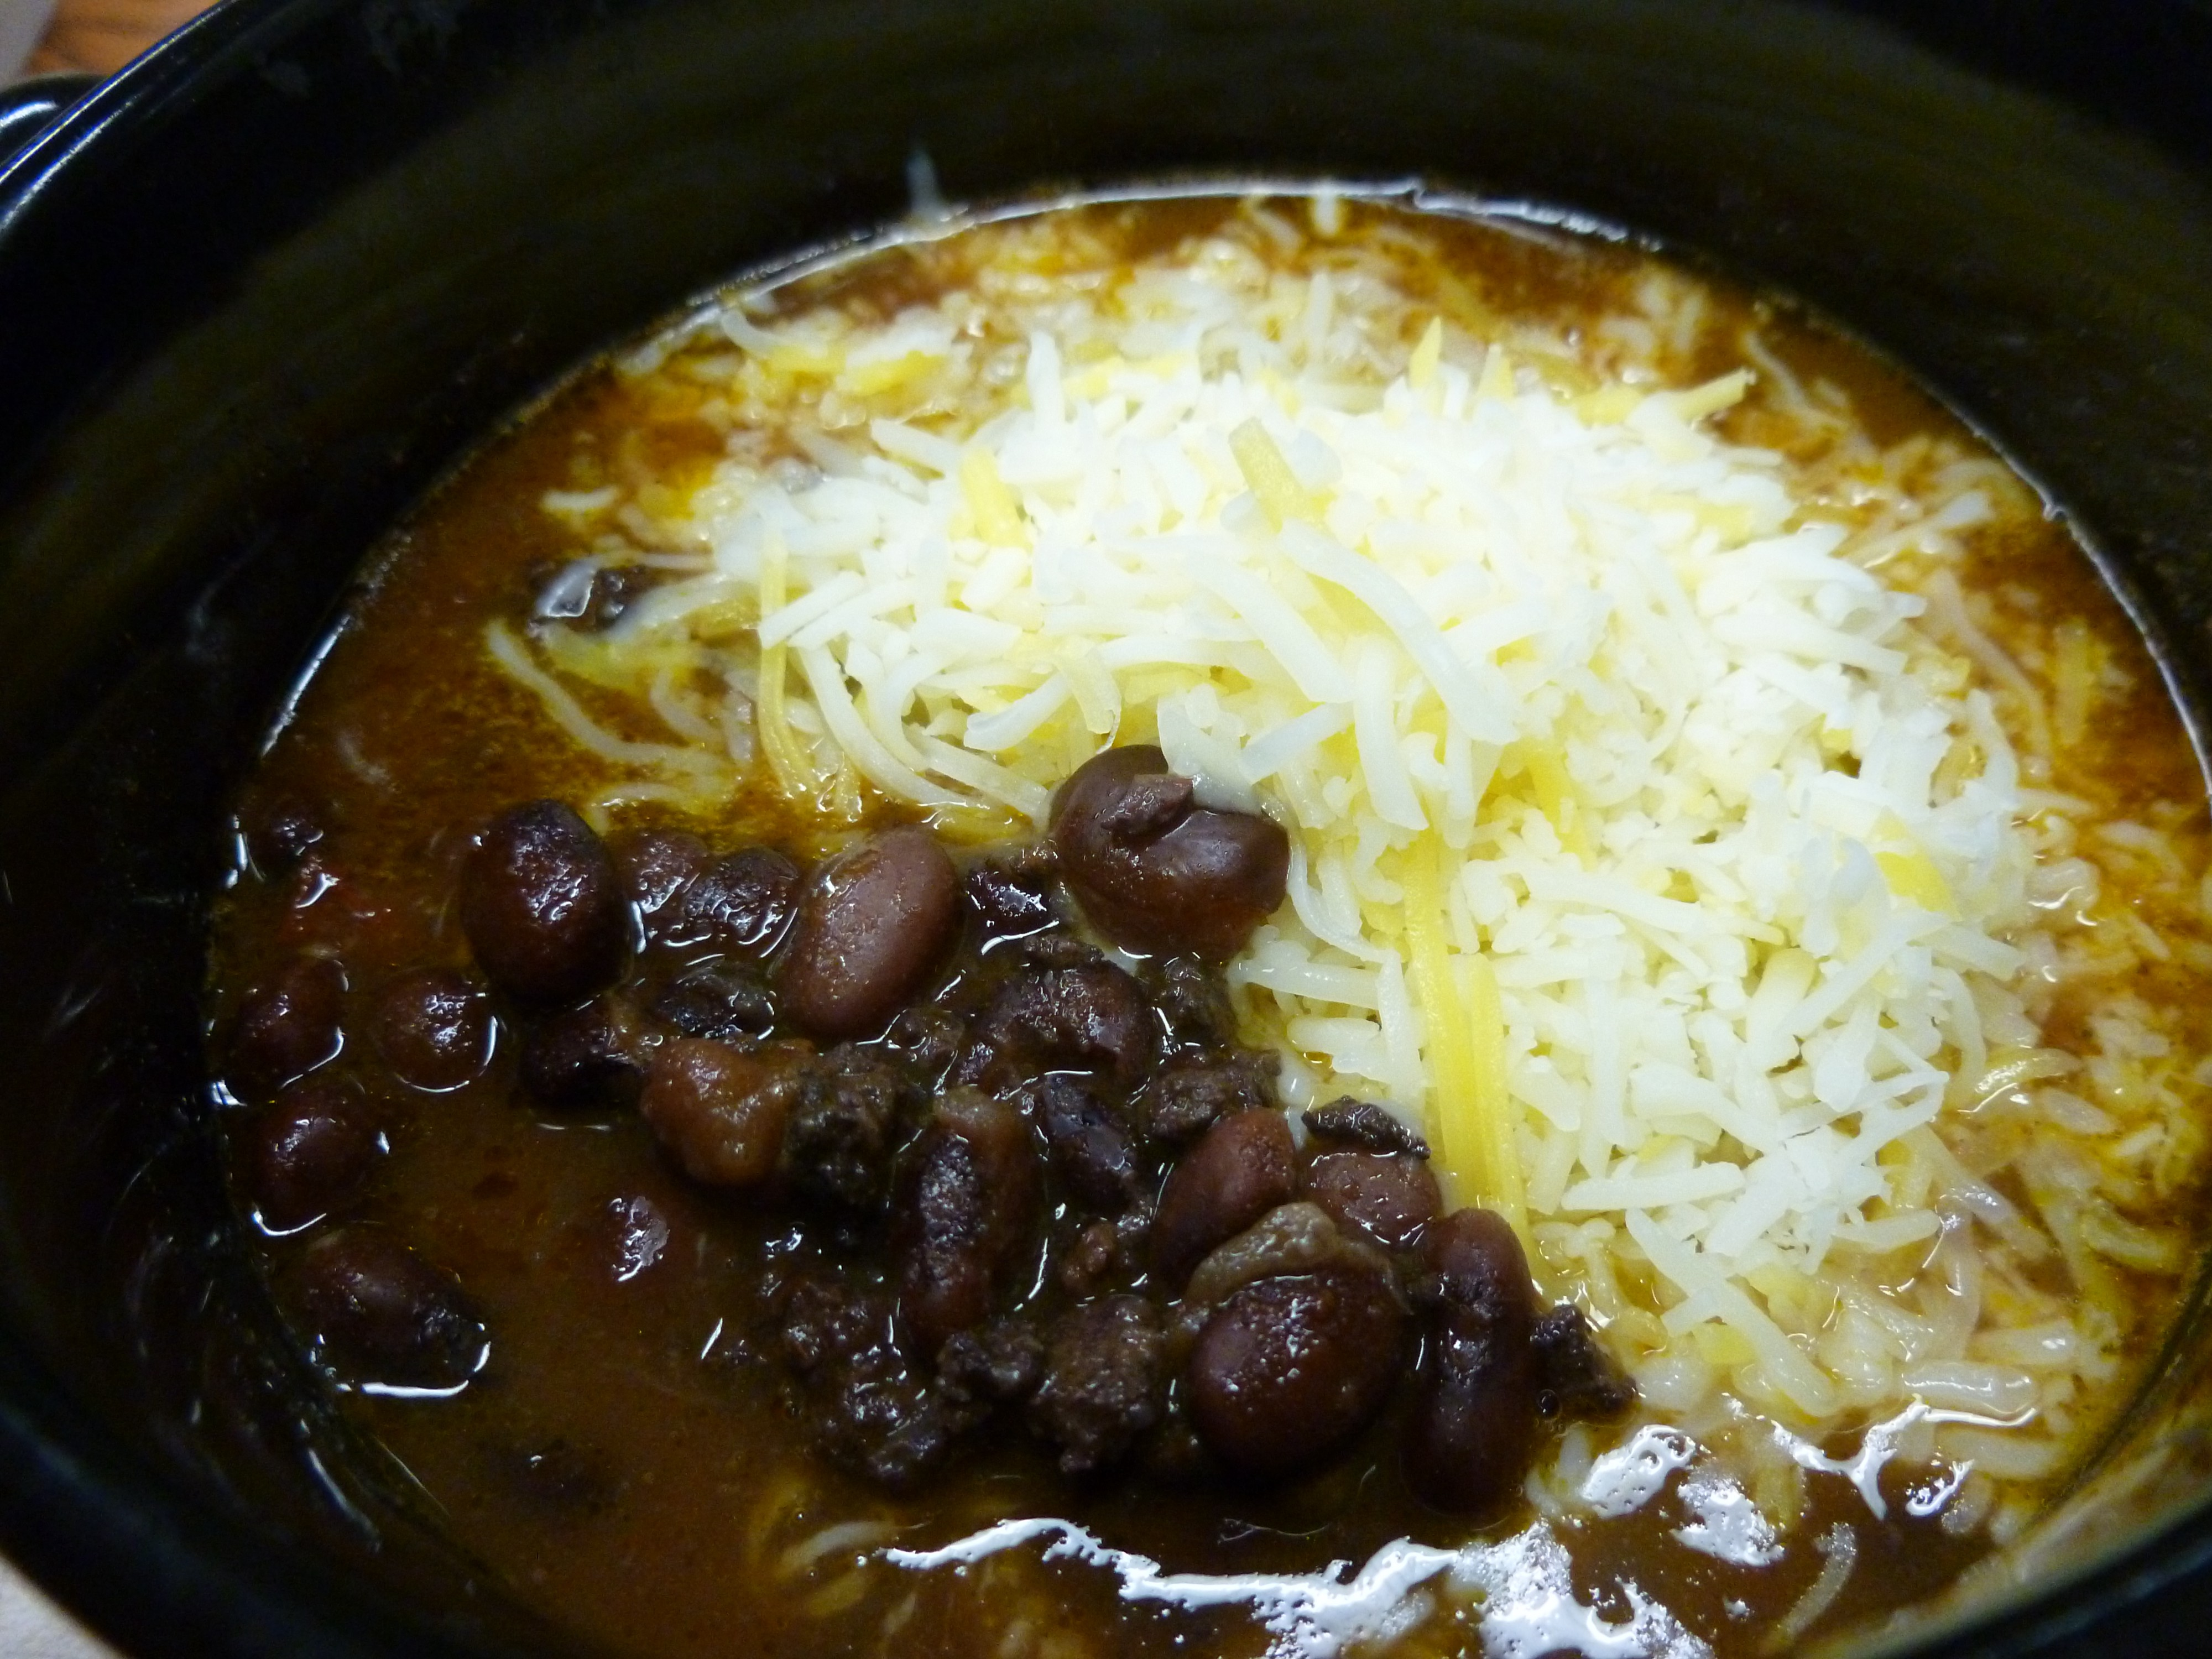 Black bean and ground elk chili with shredded cheese in a black bowl.